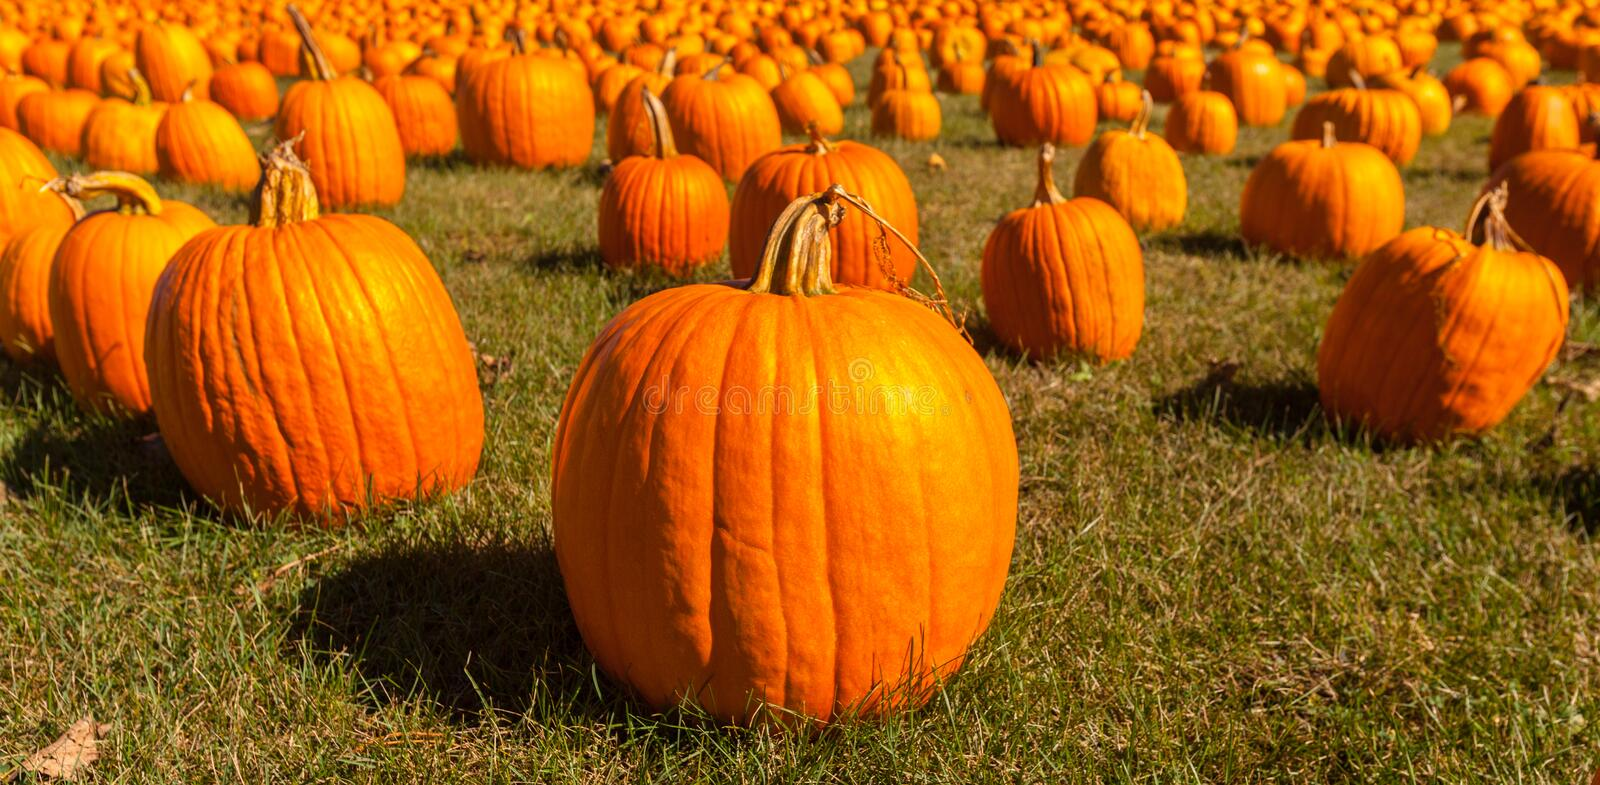 Pumpkin patch field with bright orange pumpkins on green grass stock photo